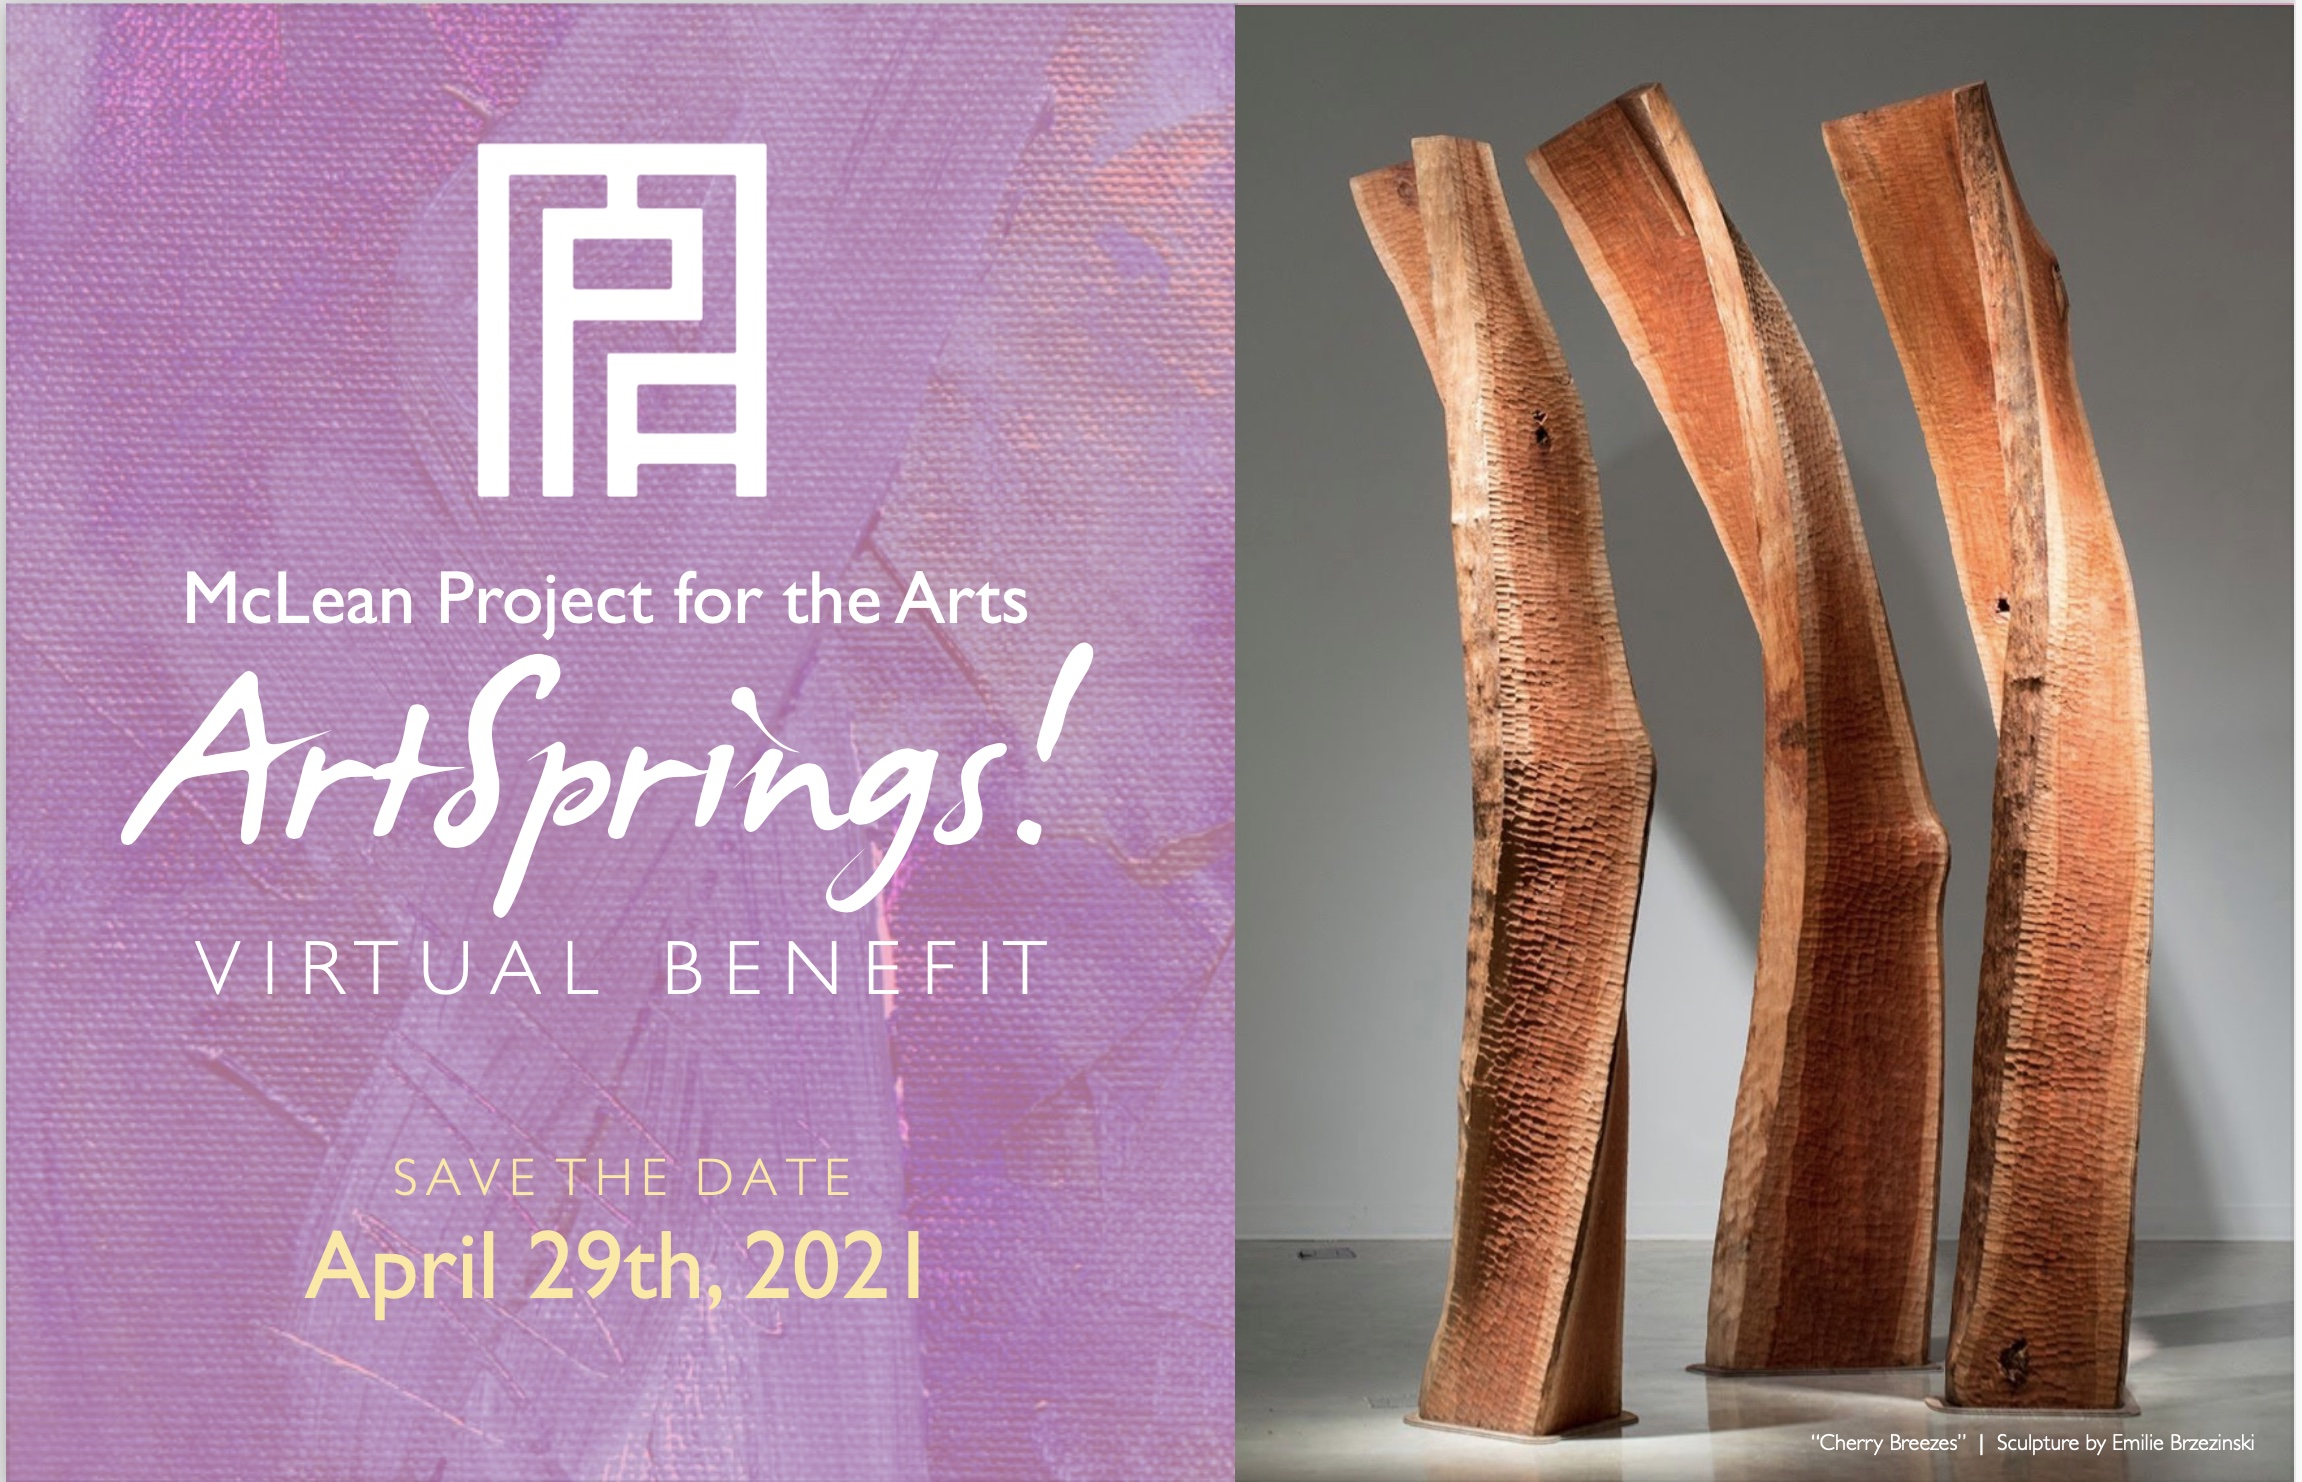 ArtSprings! Virtual Benefit